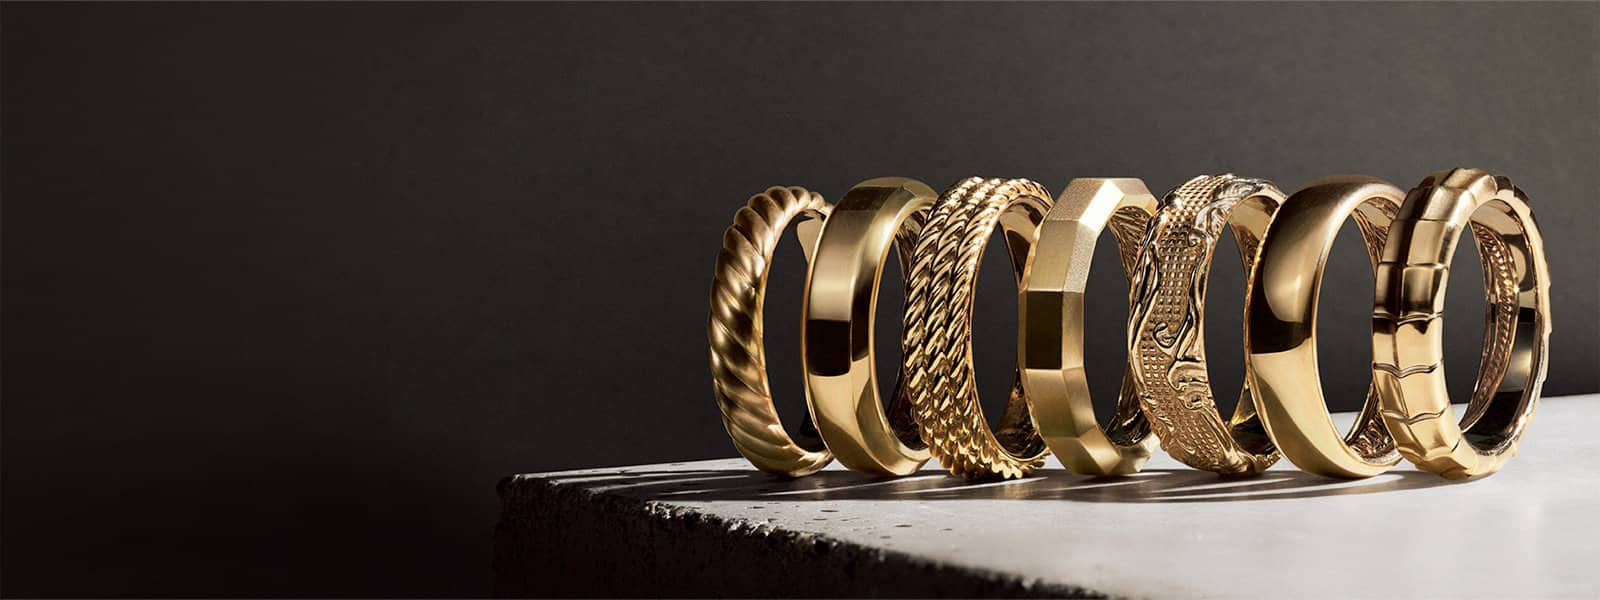 A horizontal stack of David Yurman men's The Cable Collection®, Beveled, Maritime®, Faceted, Waves, DY Classic and Armory® bands, all in 18K yellow gold, casting long shadows on a white stone surface.